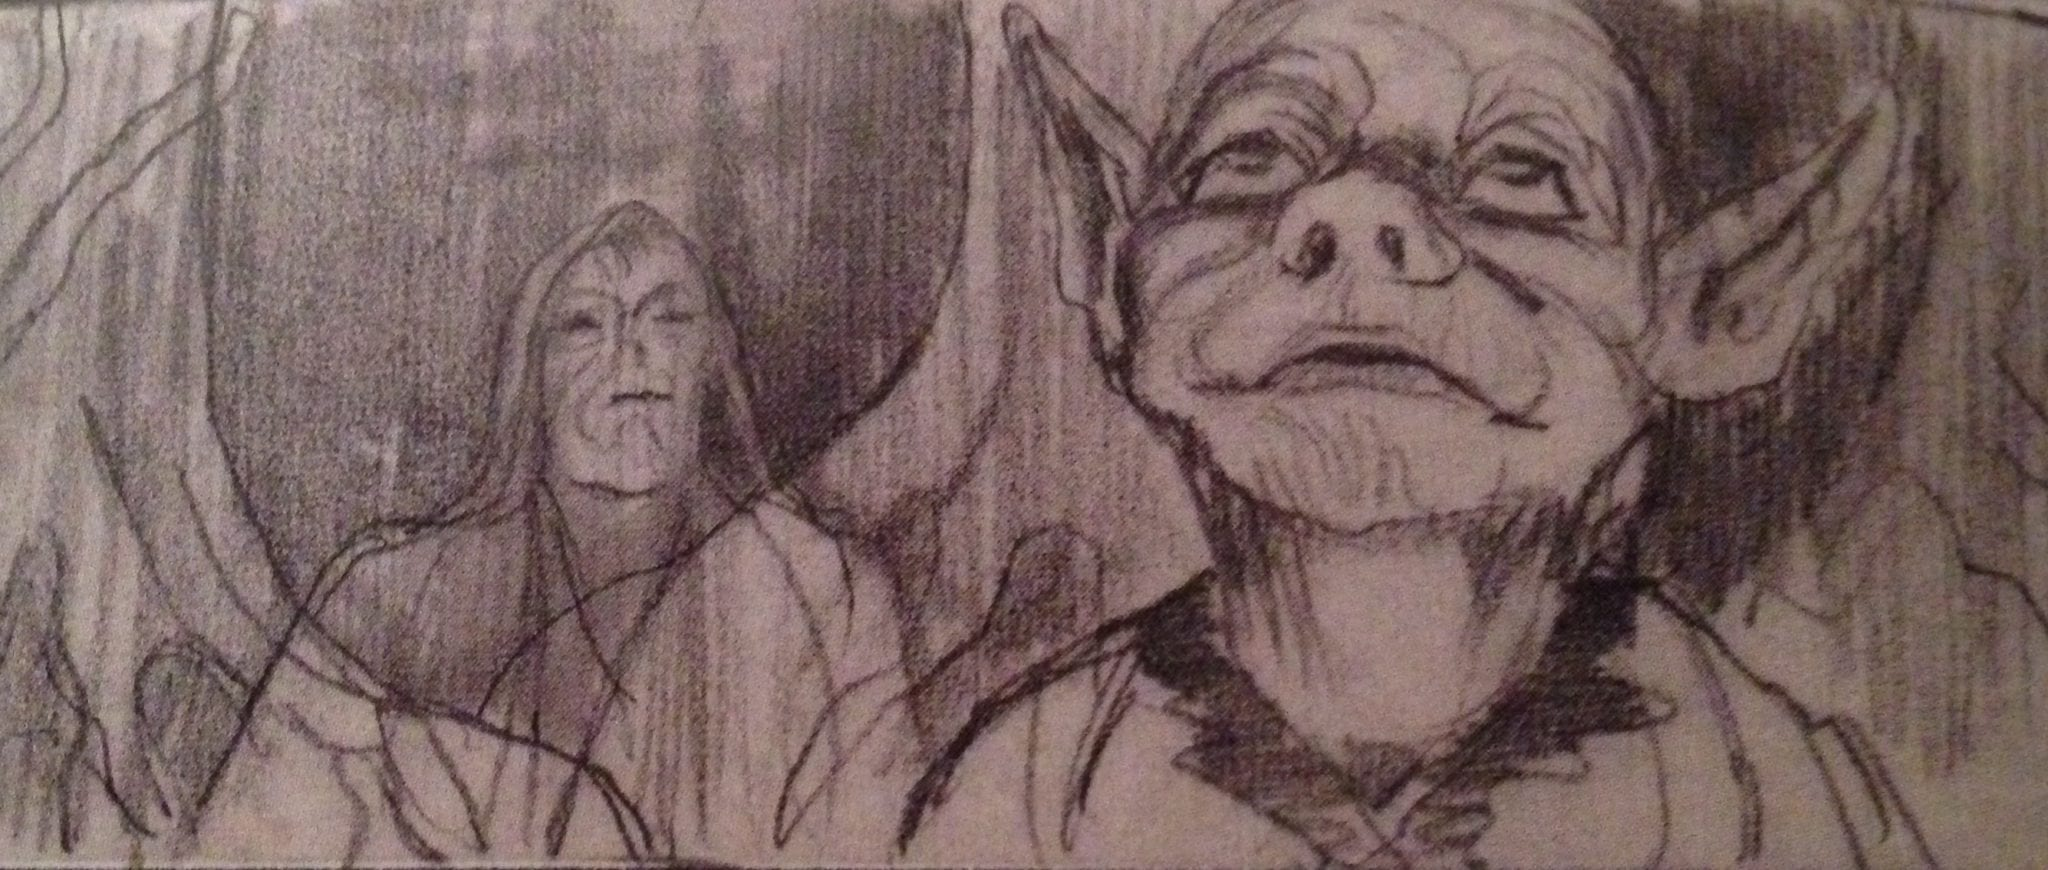 Book review star wars storyboards the original trilogy blast star wars storyboards the original trilogy 40 edited by jw rinzler foreword by joe johnston introduction by nilo rodis jamero malvernweather Choice Image